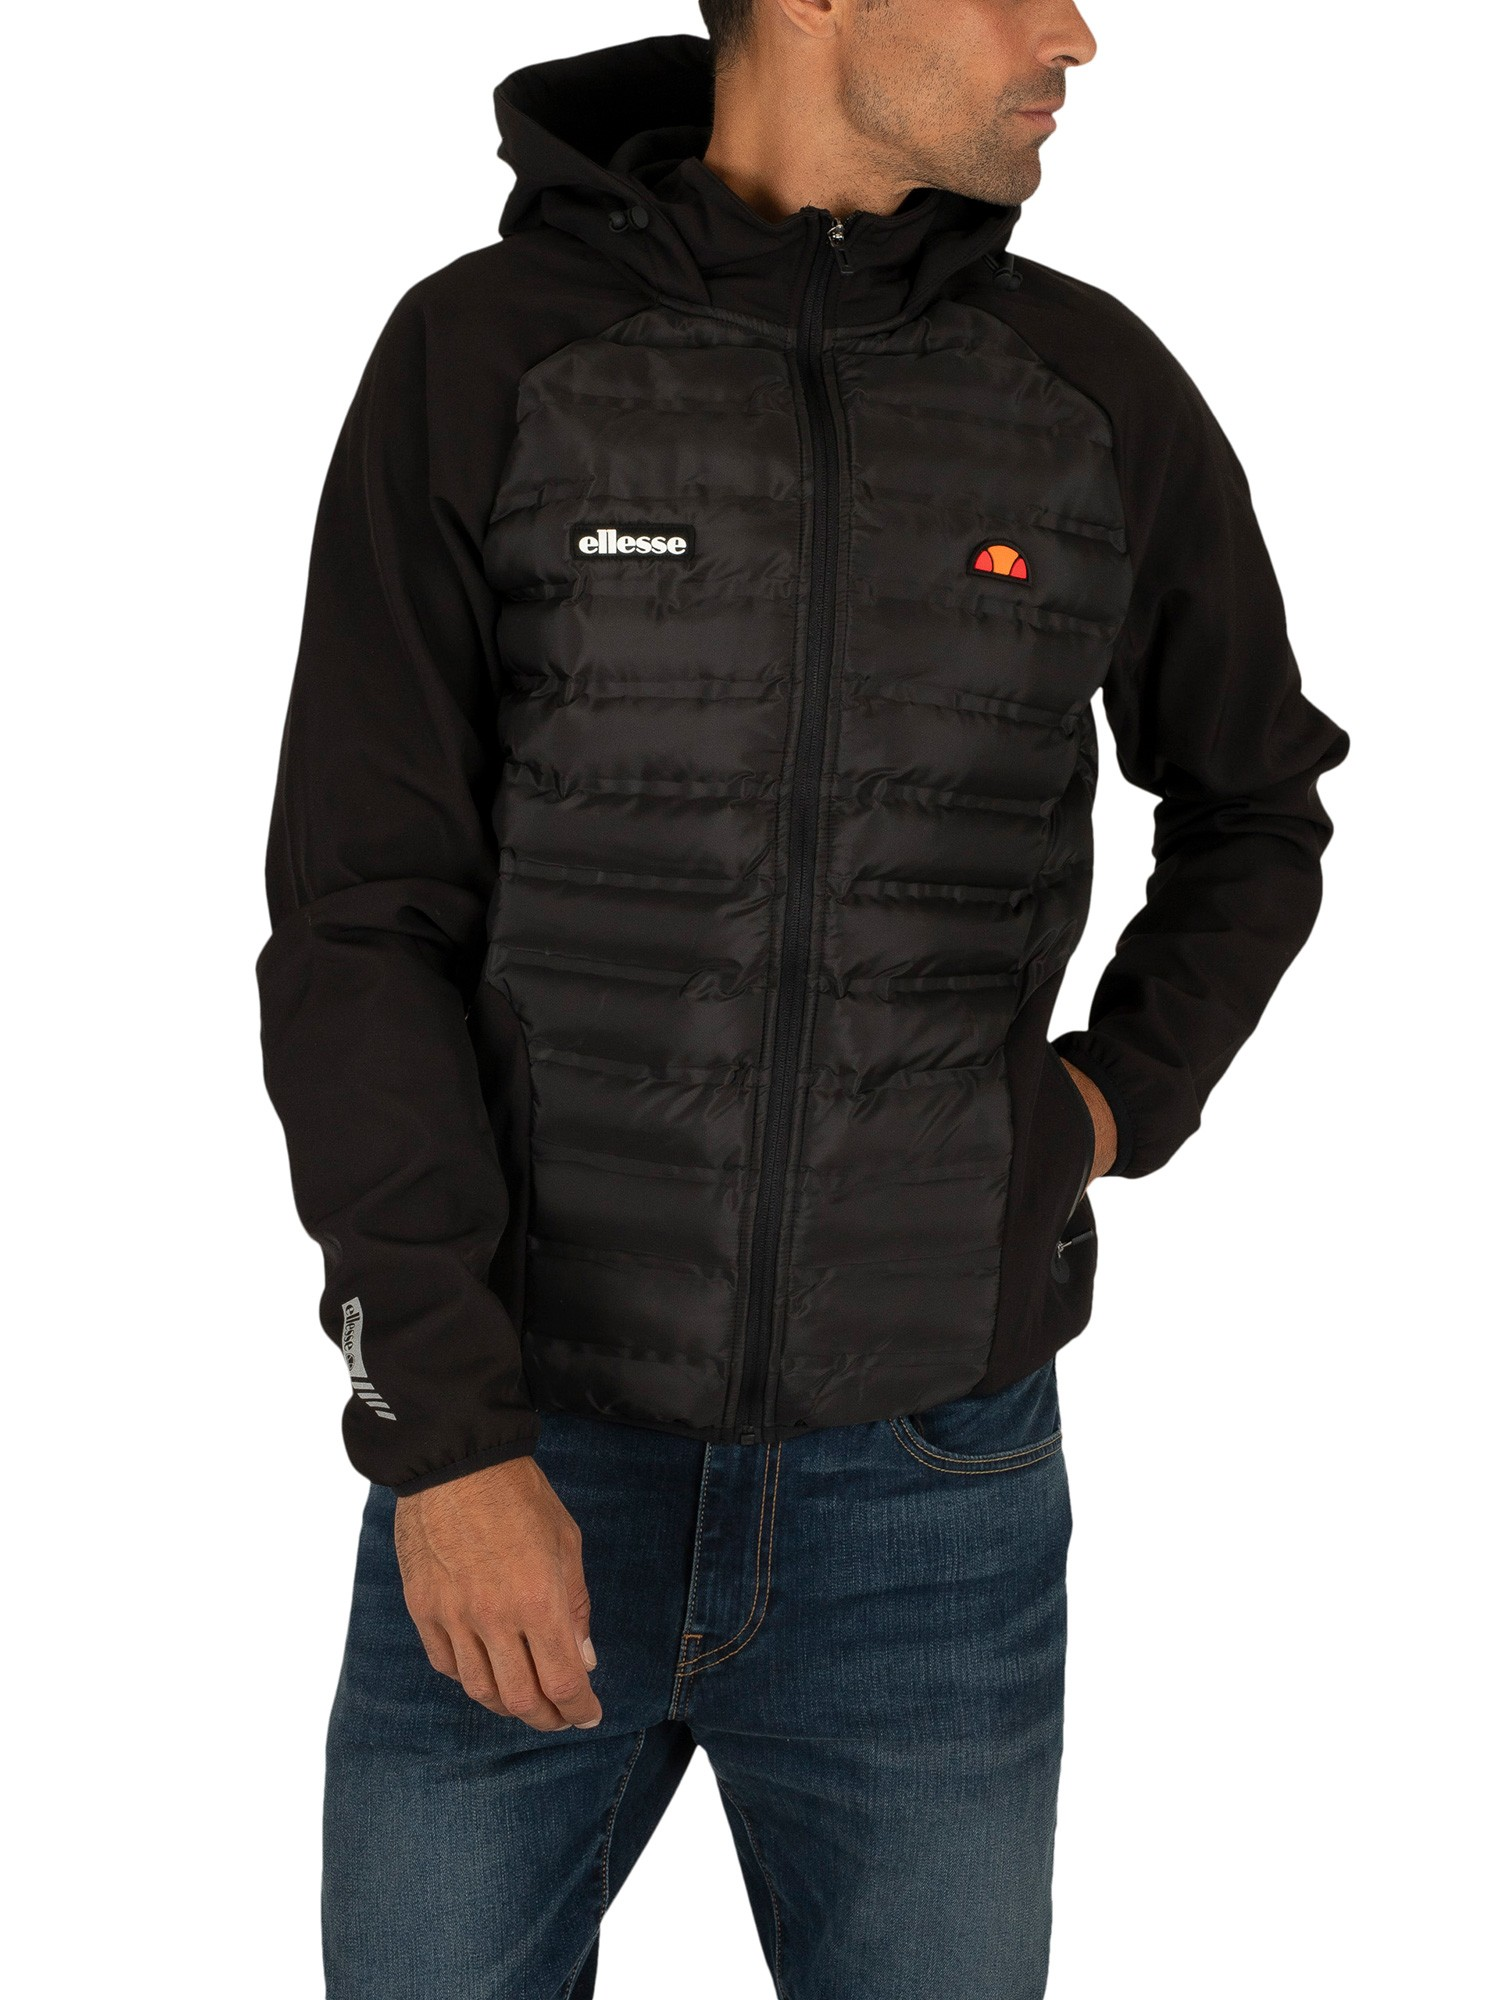 limpid in sight recognized brands buying cheap Ellesse Berici Padded Jacket - Black